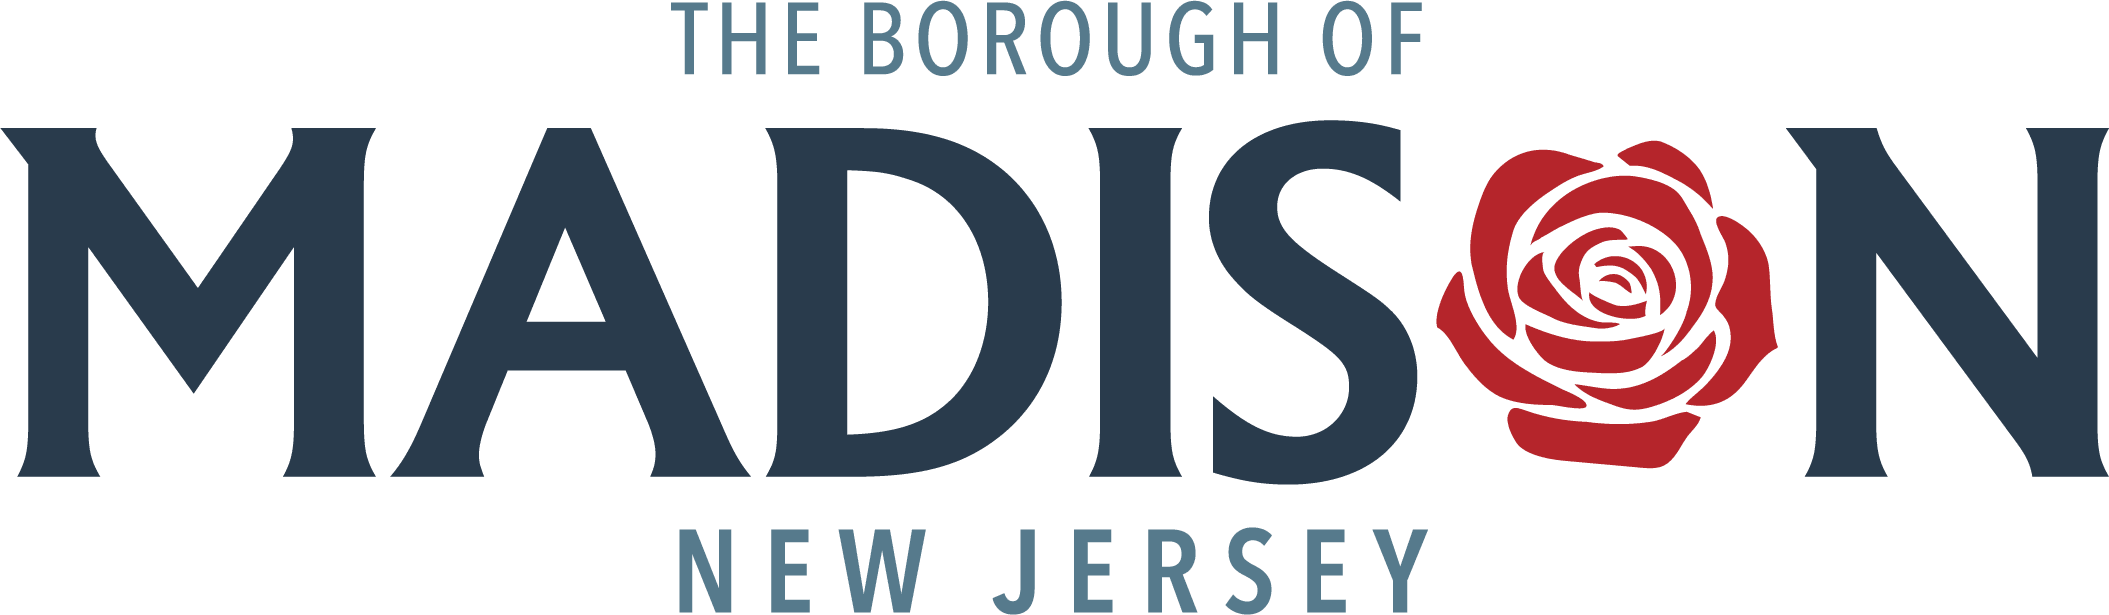 madisonwordmark_borough